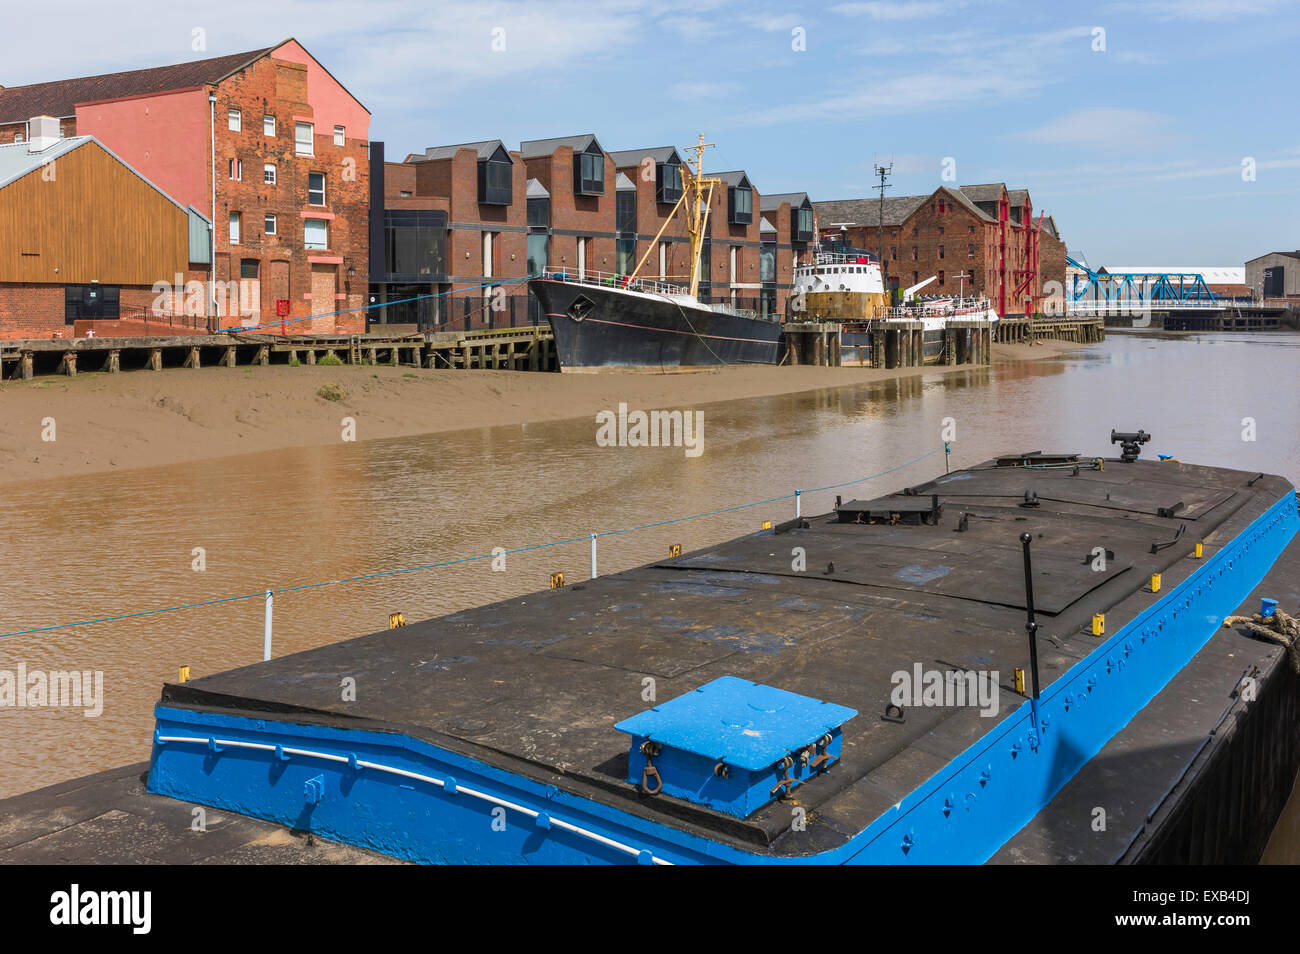 River Hull at low tide with an obsolete ship aground in the mud bank flanked by office and other buildings. - Stock Image